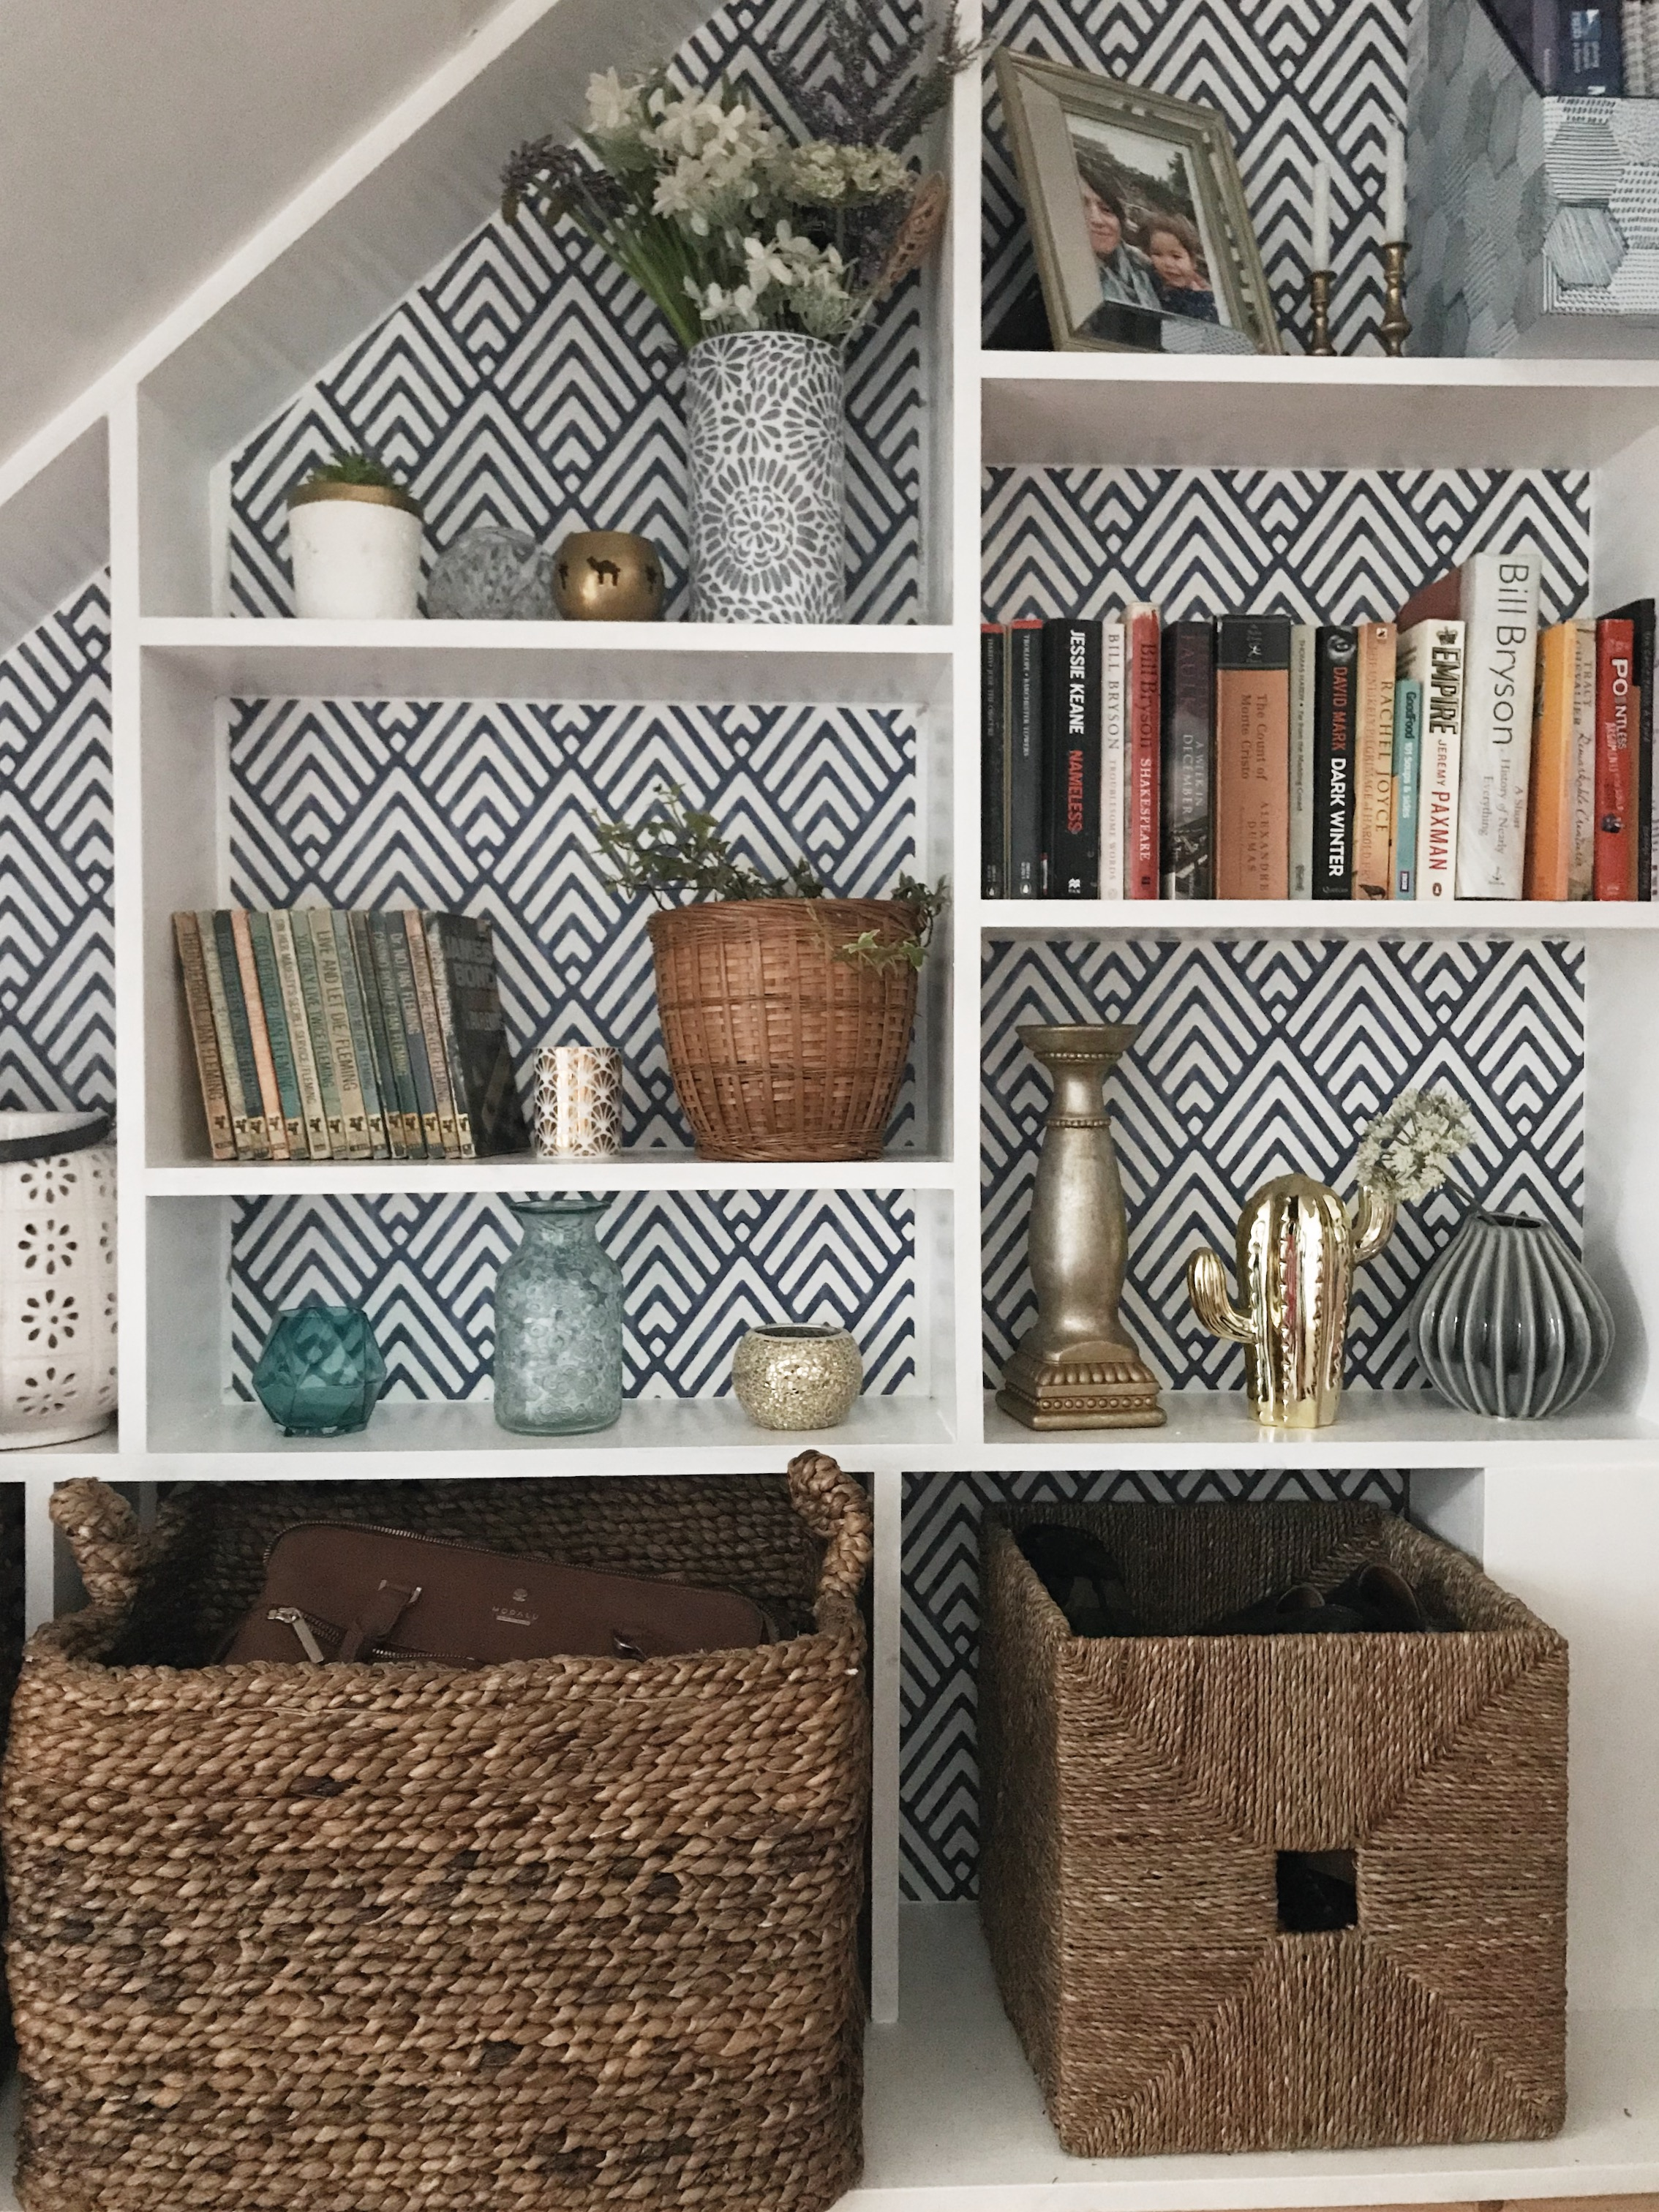 The  baskets  go so well with the wallpaper